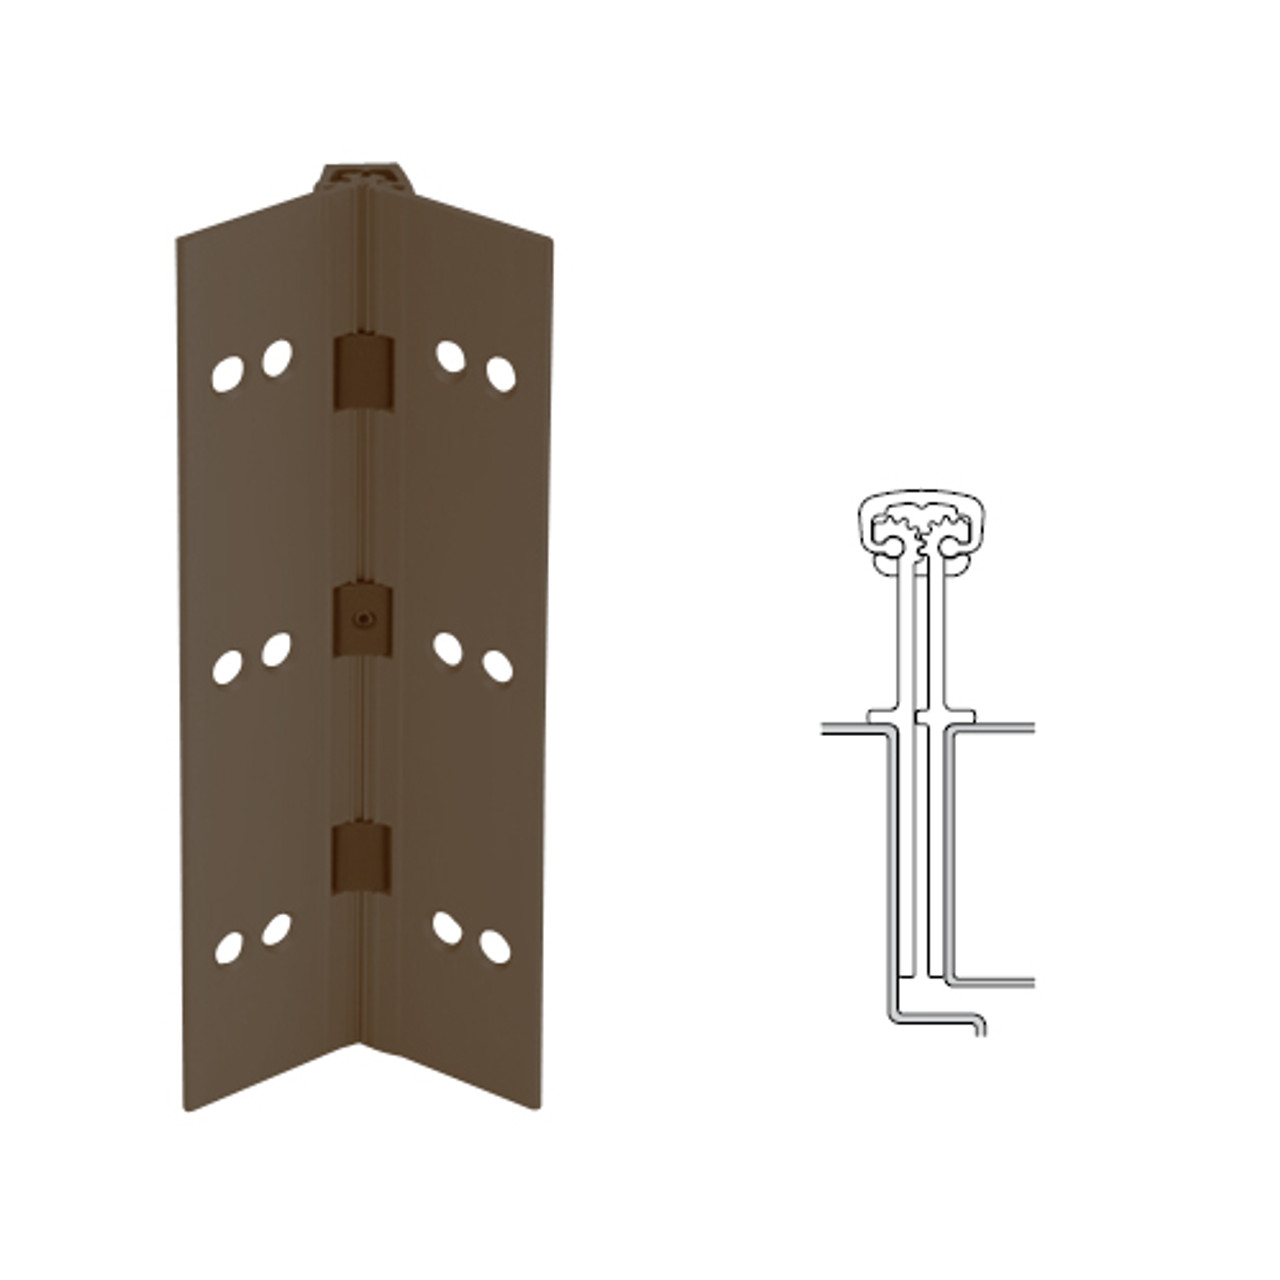 040XY-313AN-83-WD IVES Full Mortise Continuous Geared Hinges with Wood Screws in Dark Bronze Anodized